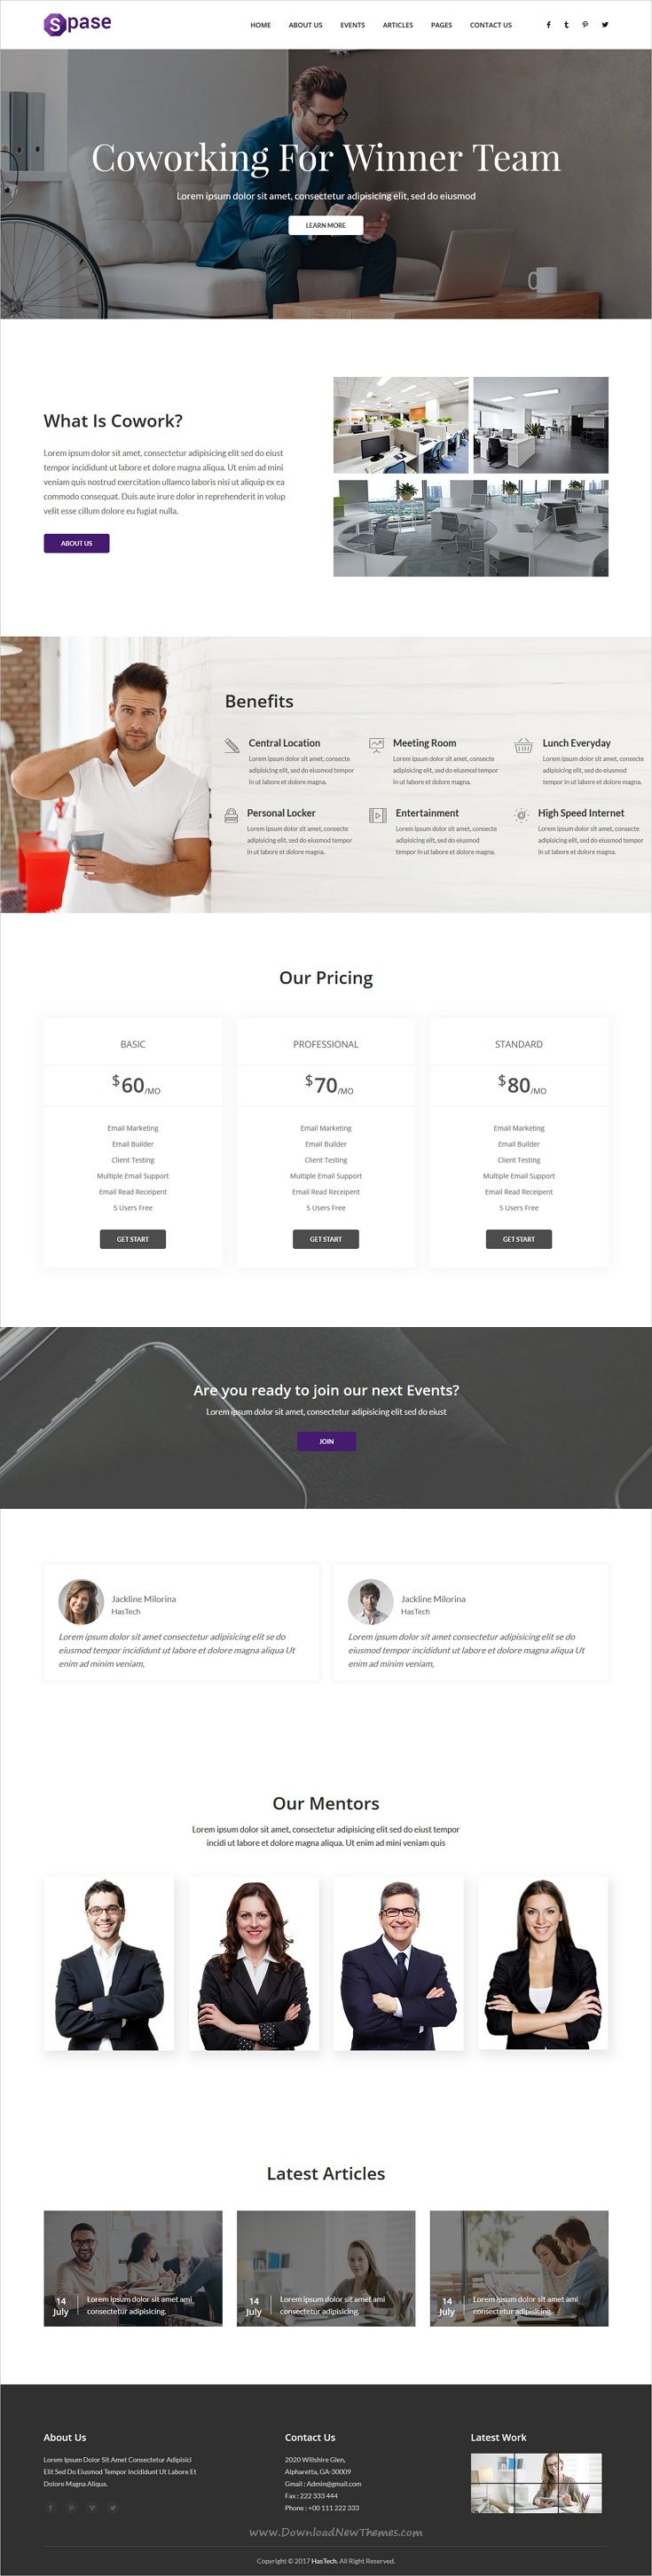 Spase is clean and modern design 4in1 responsive #HTML template for Open #Office, #Coworking Space & startup offices website download now..